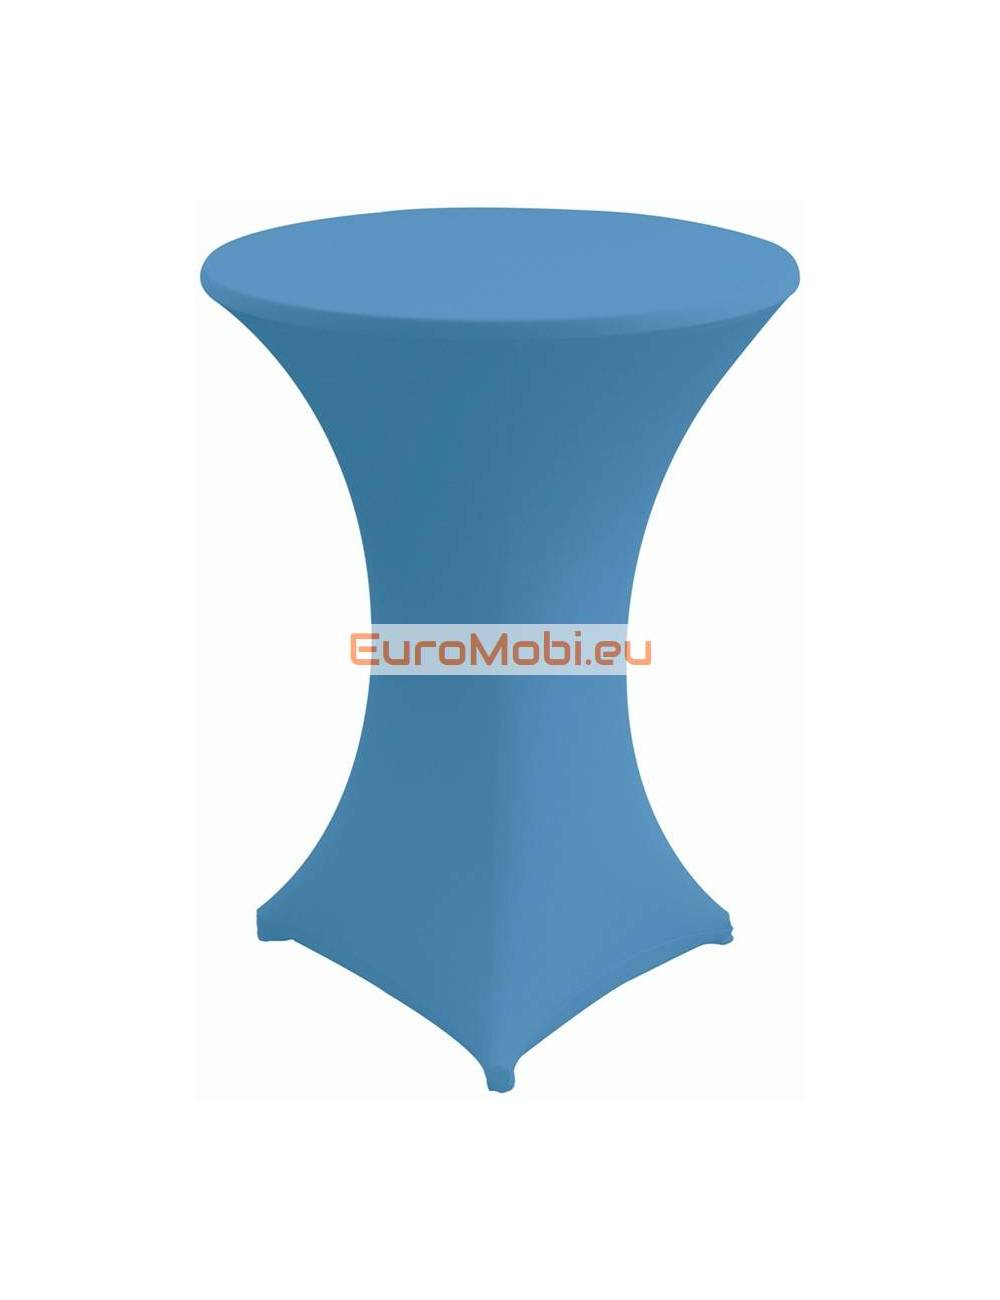 Cover and top stretch for standing table round ligth blue